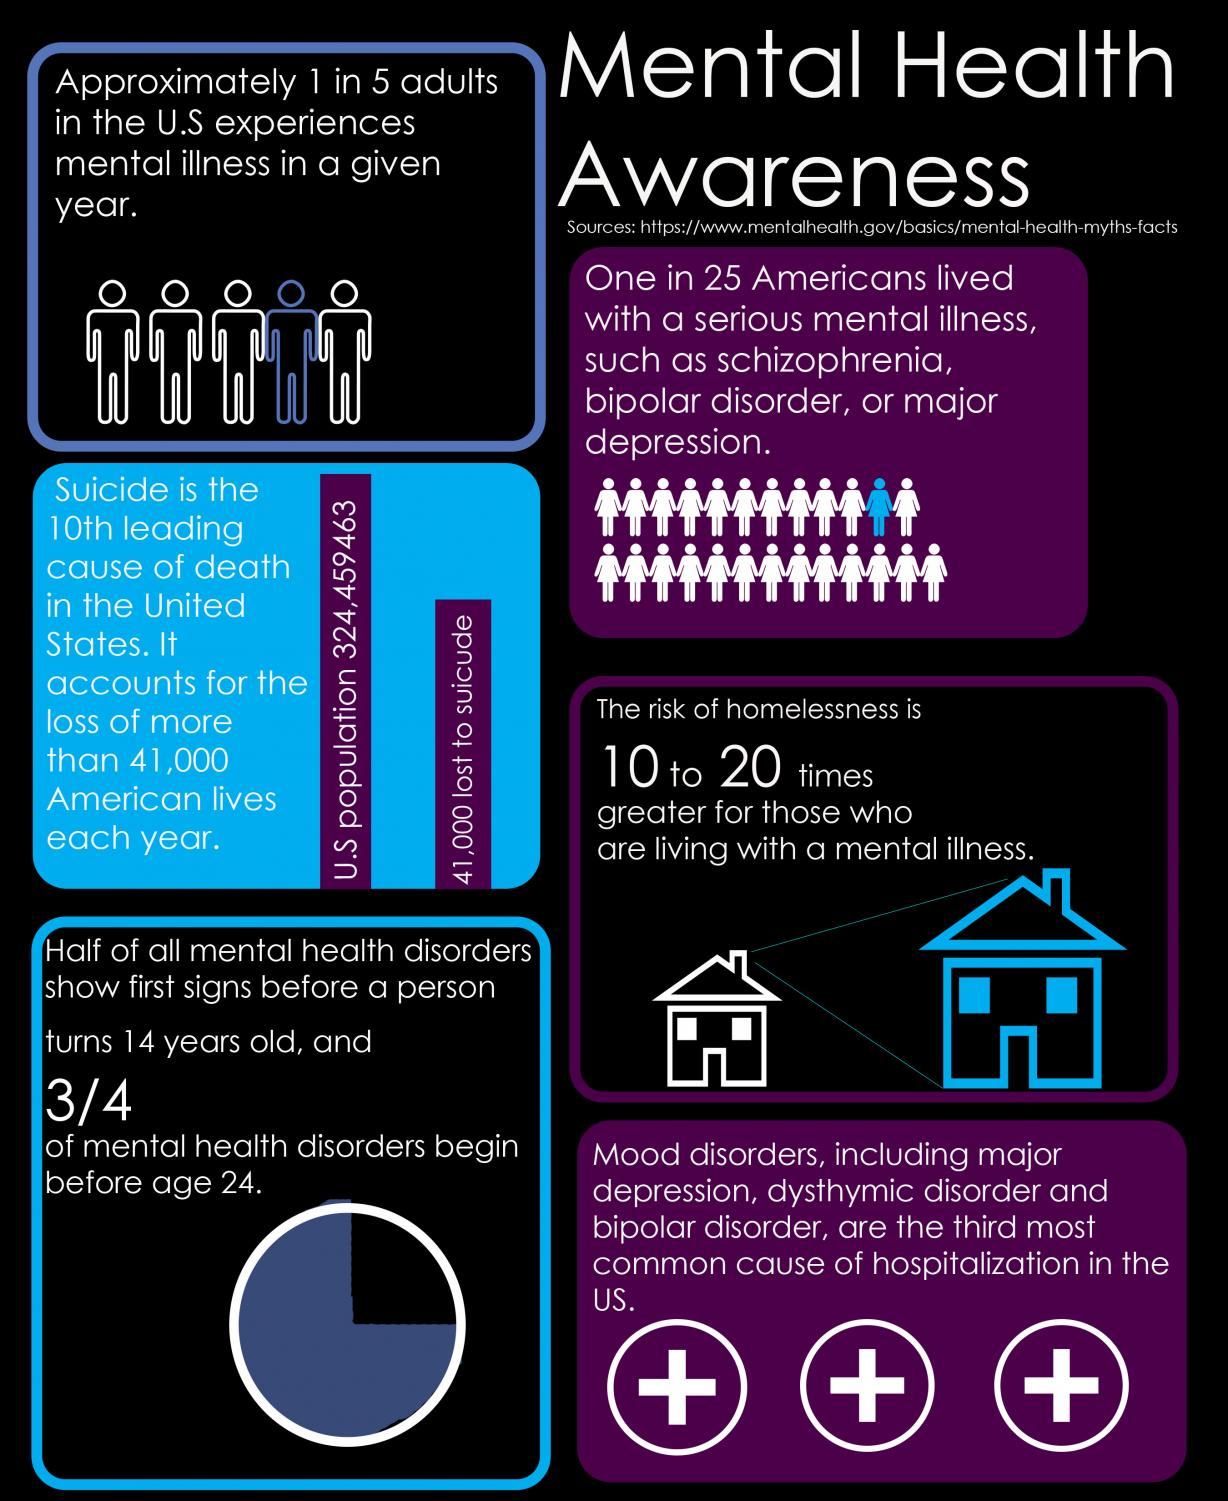 Stats from mentalhealth.gov, a good place to go for help or guidance. The facts show that mental health has always been a problem but now people are starting to see the effects it can take when it goes untreated. It's a serious problem that affects many of the people around us every day, and noticing it sooner can help ensure their health in the future.